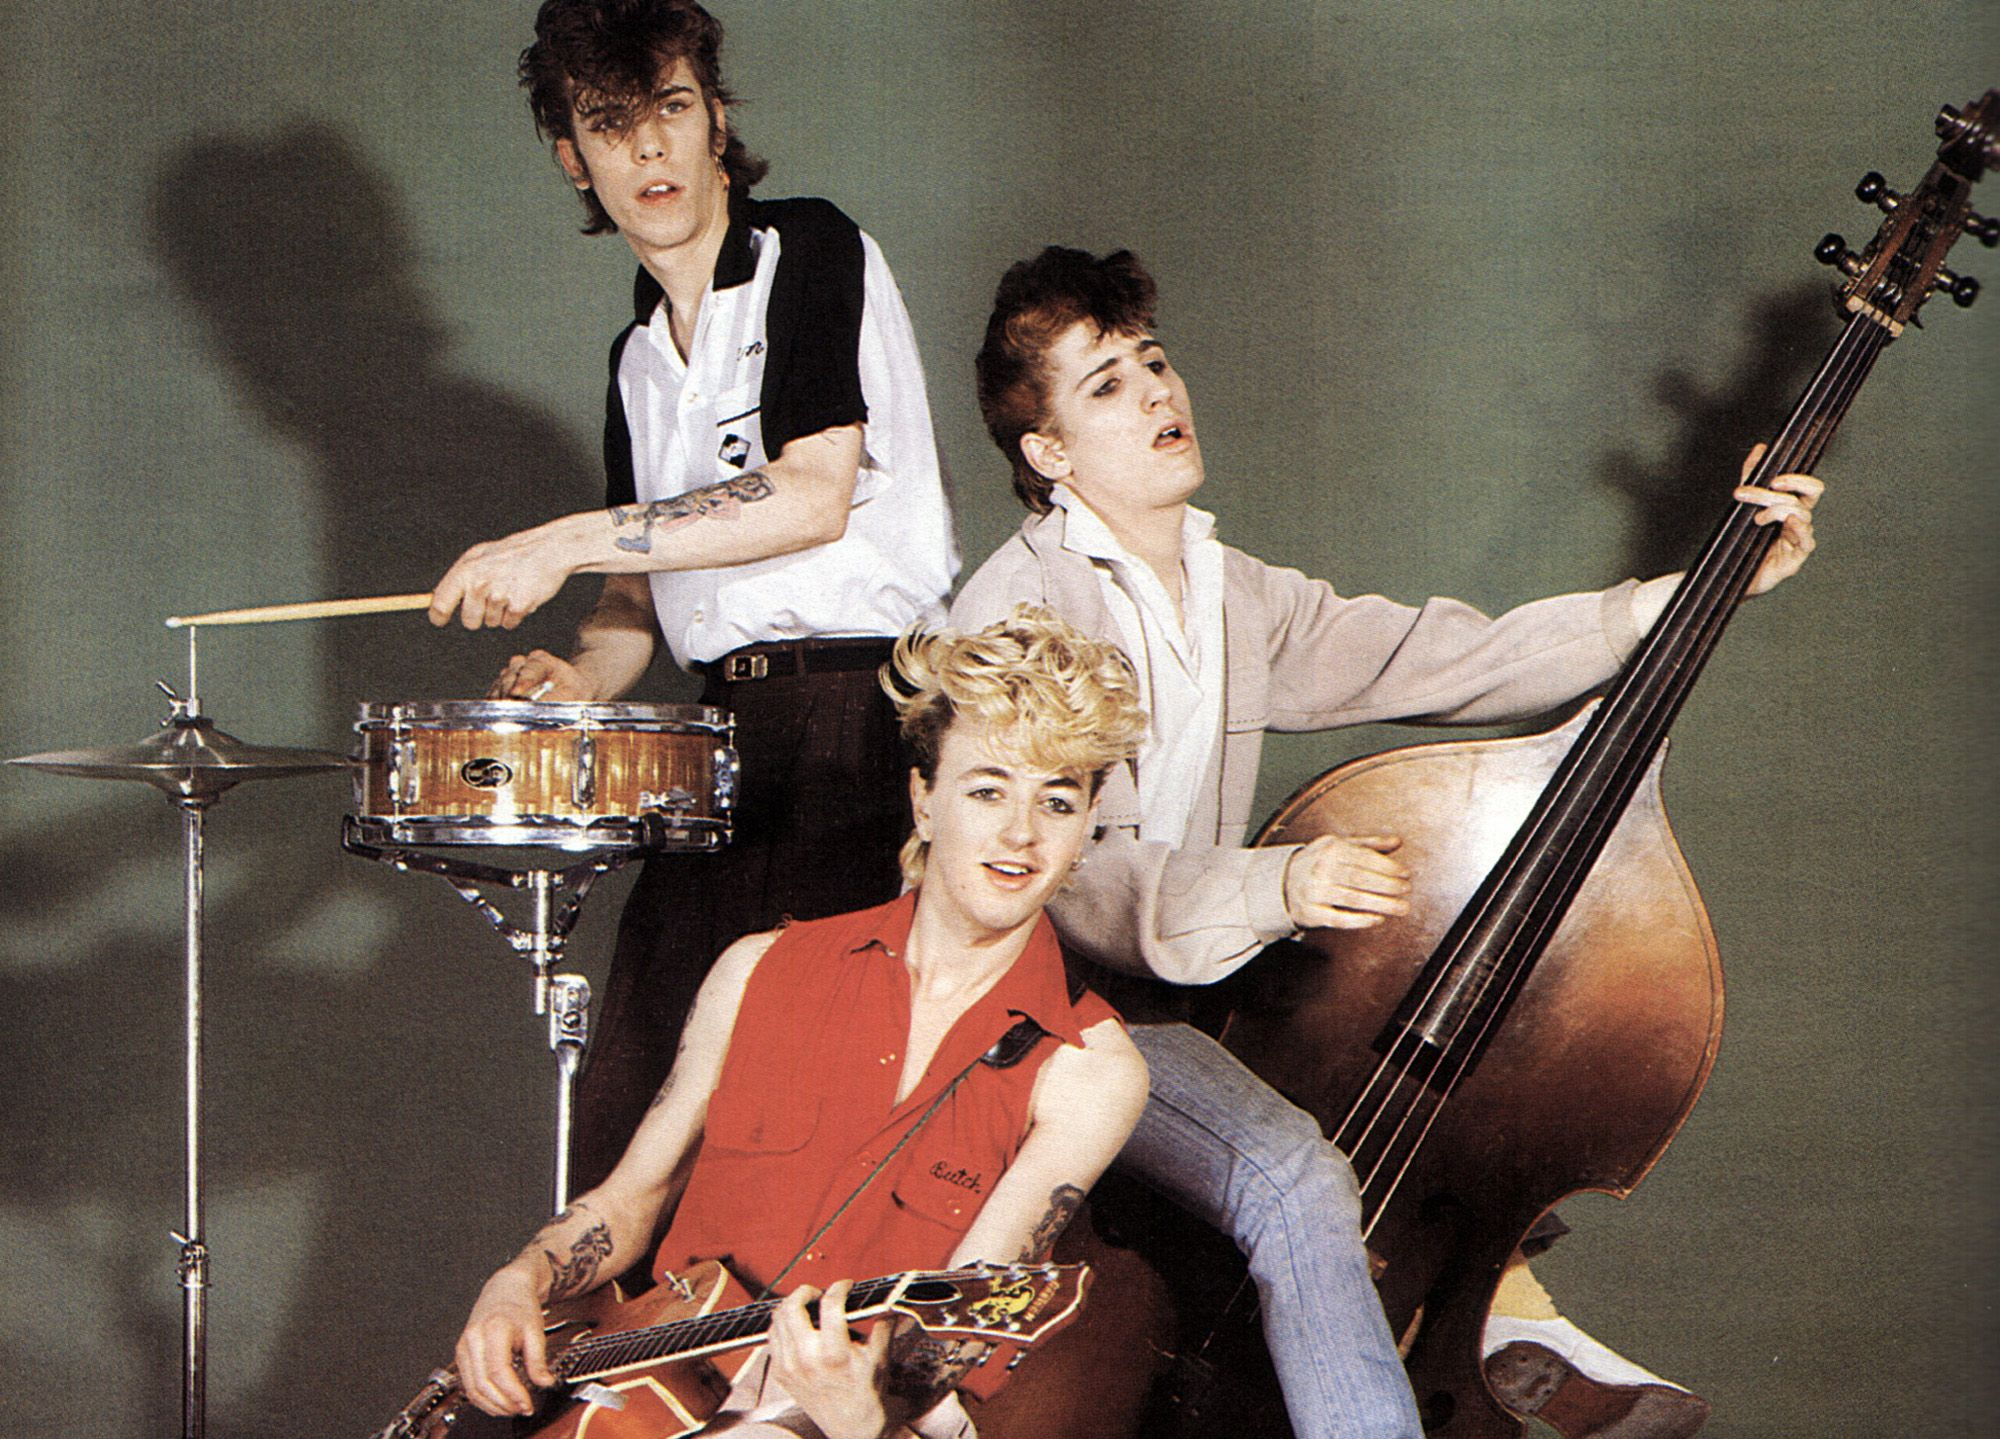 stray cats - Google Search | Rockabilly | Pinterest | Rock ...